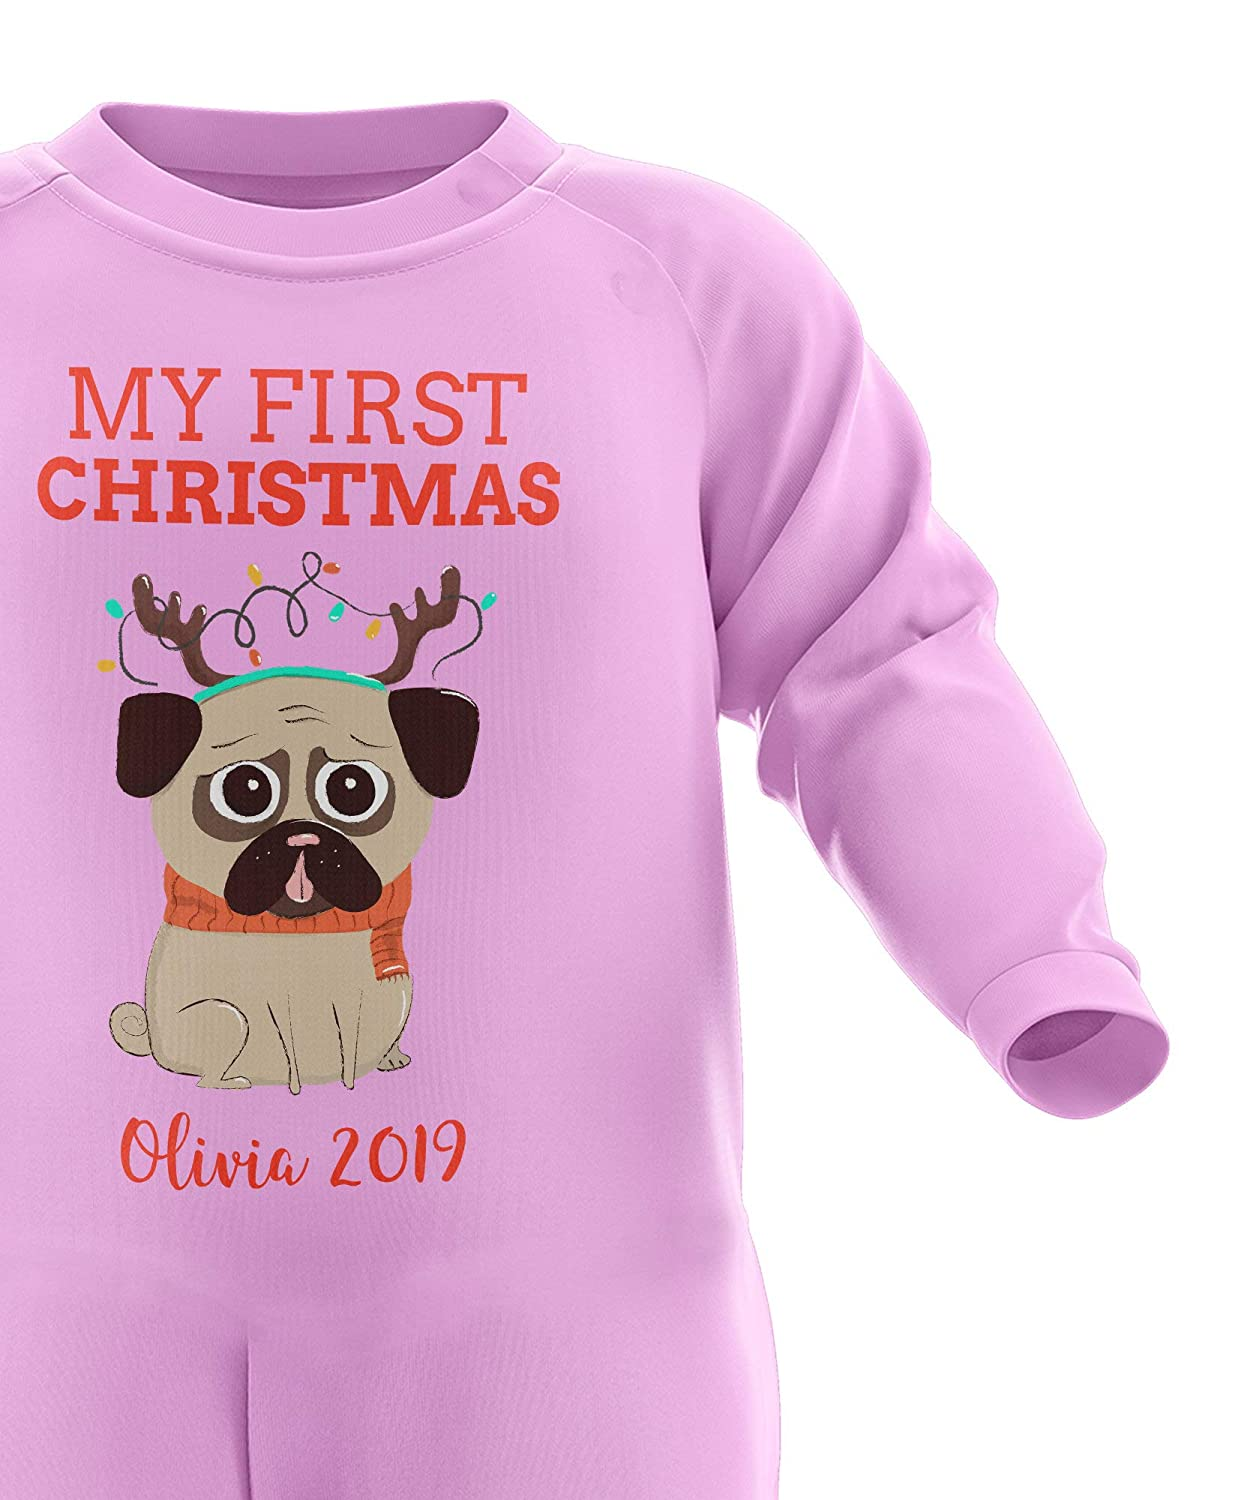 Custom Baby Christmas Outfit Christmas Pyjamas Cute First Xmas Gifts Personalised My First Christmas Babygrow FunkyShirt My 1st Christmas Personalised Baby Romper Babys First Christmas